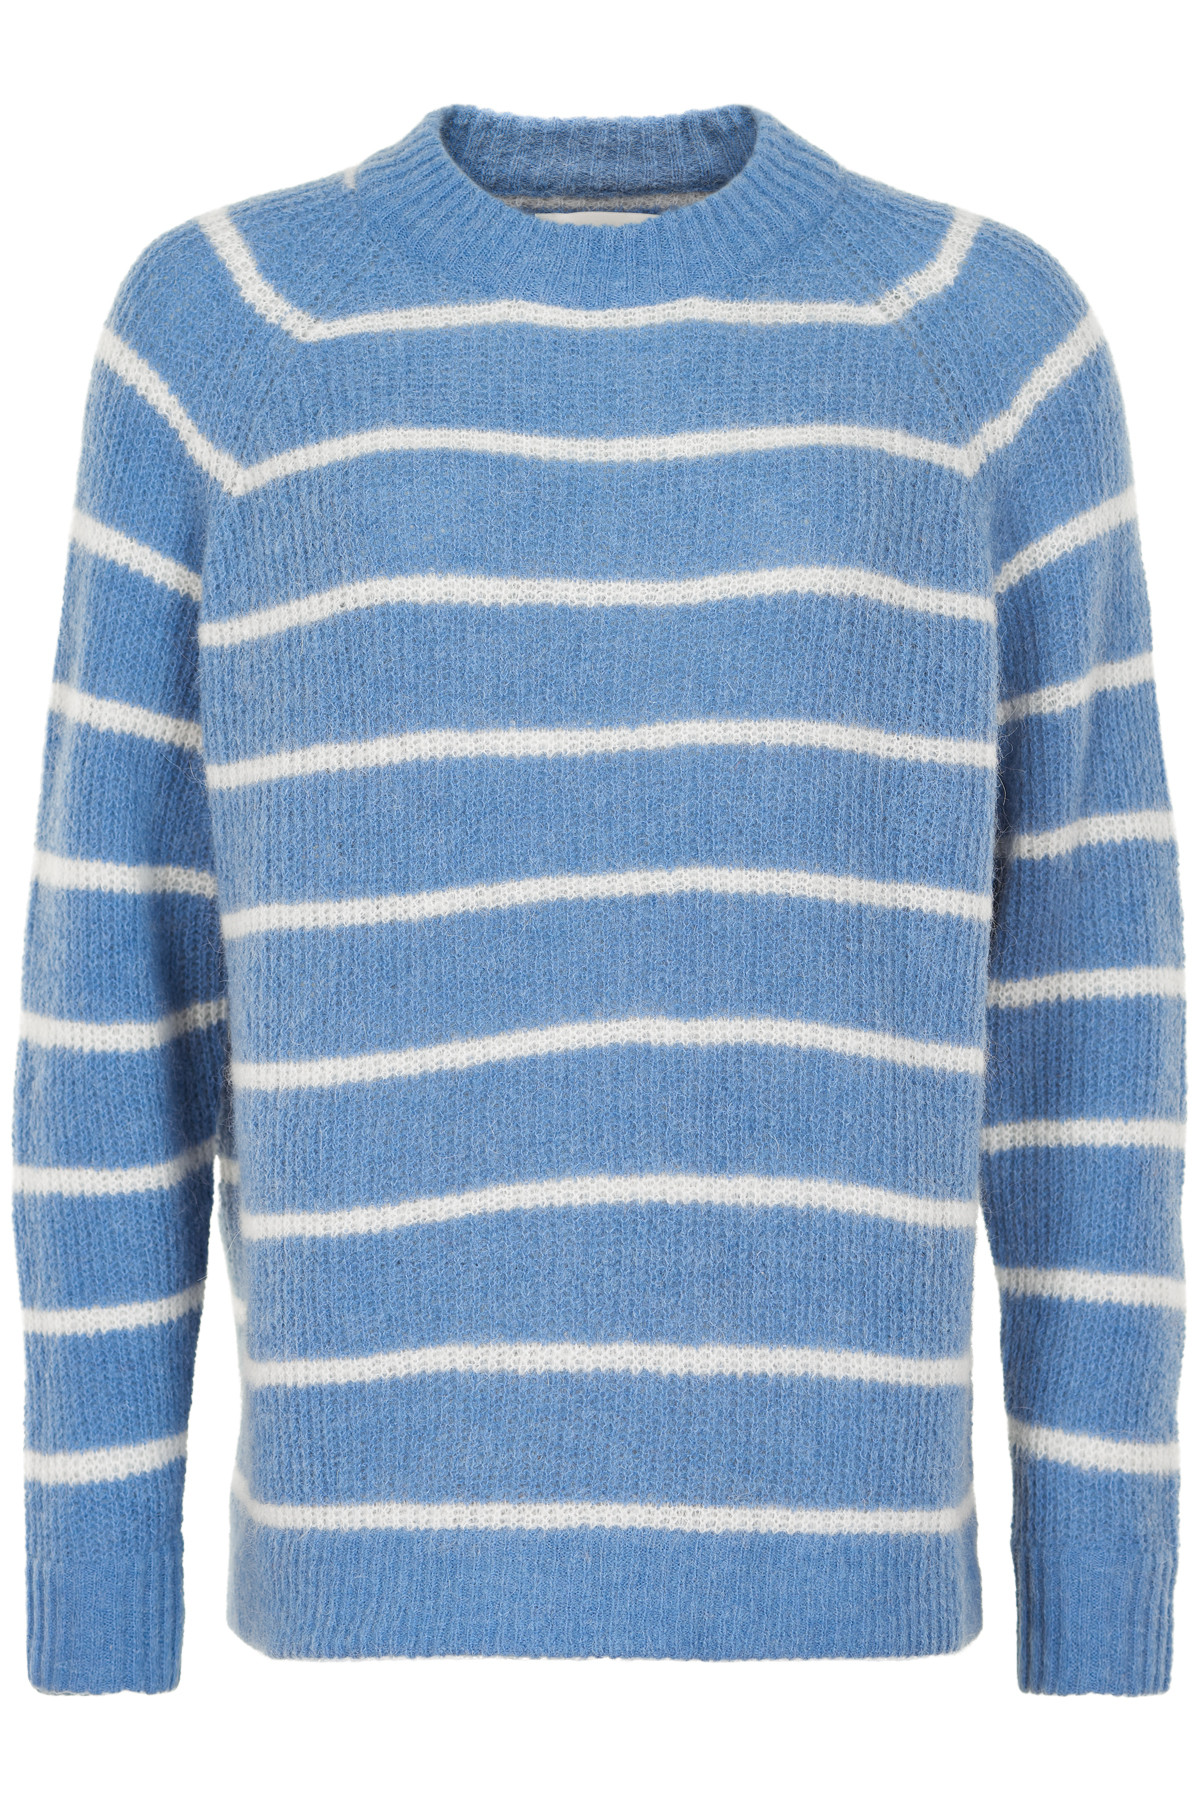 Image of   AND LESS ALBAMBINA PULLOVER 5120209 (Colony Blue, S)